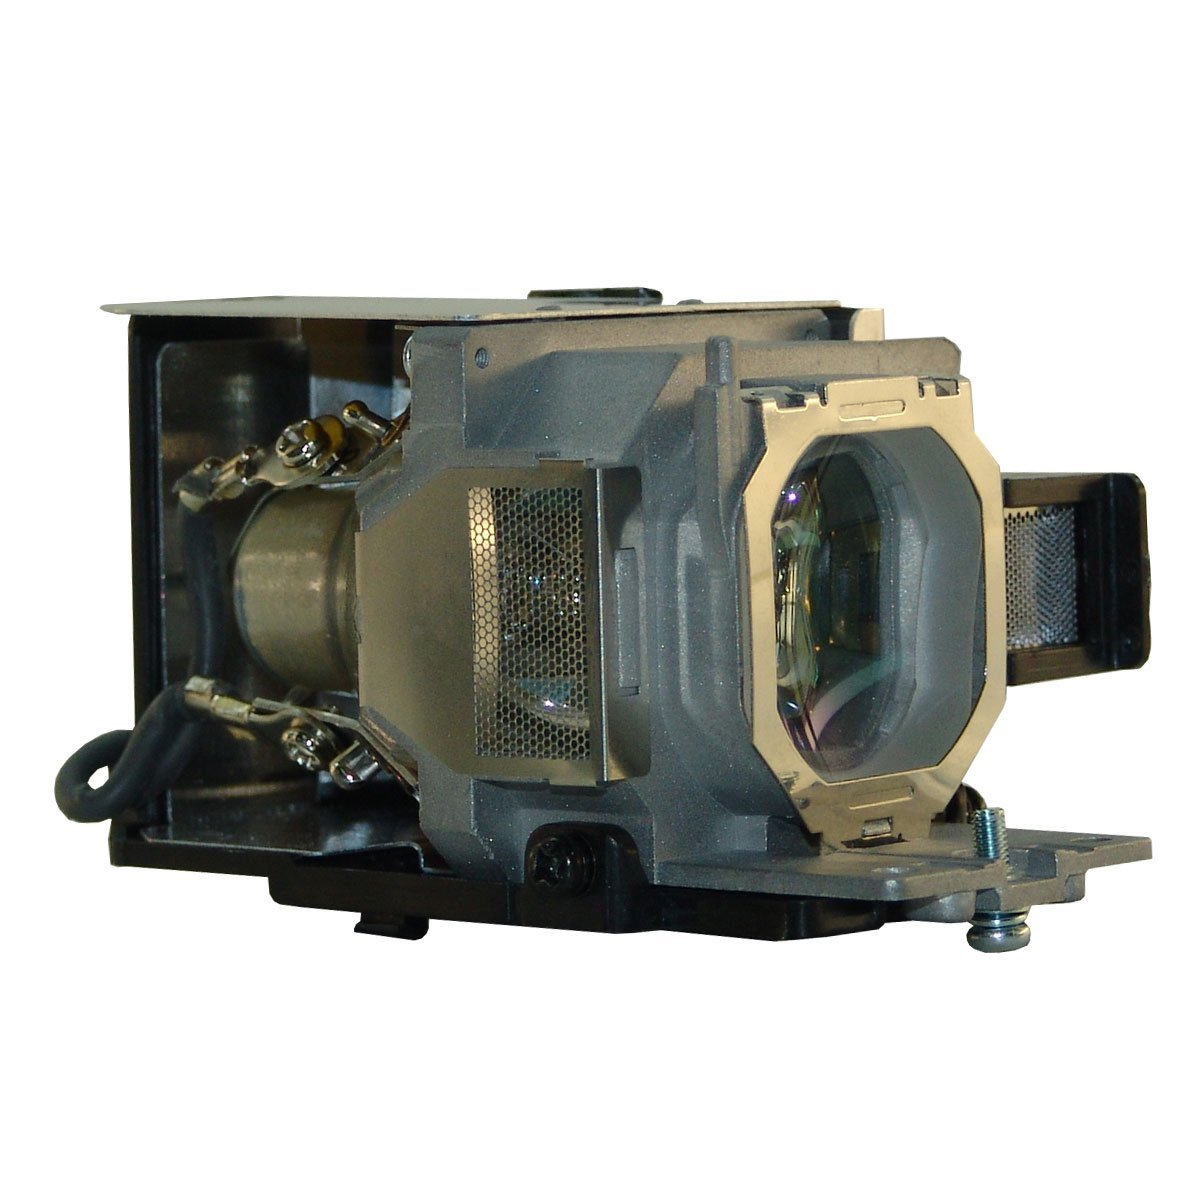 LMP-D200 LMPD200 for Sony VPL-DX10 VPL-DX11 VPL-DX15 Projector Bulb Lamp with housing